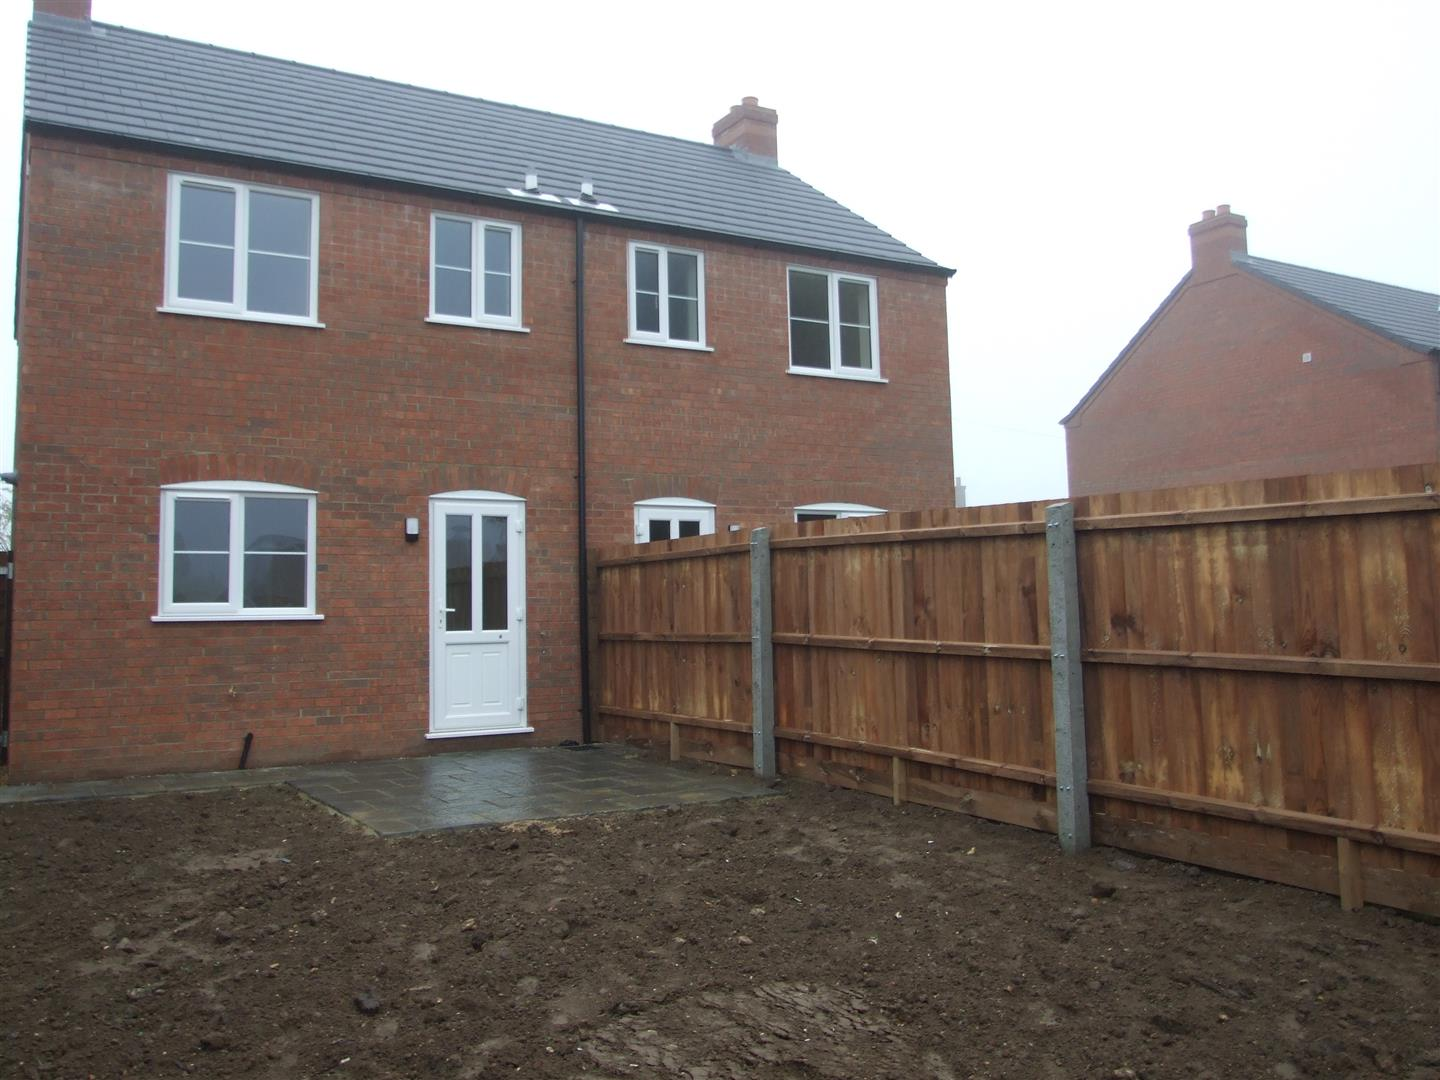 2 bed semi-detached house to rent in Long Sutton Spalding, PE12 9LE 11